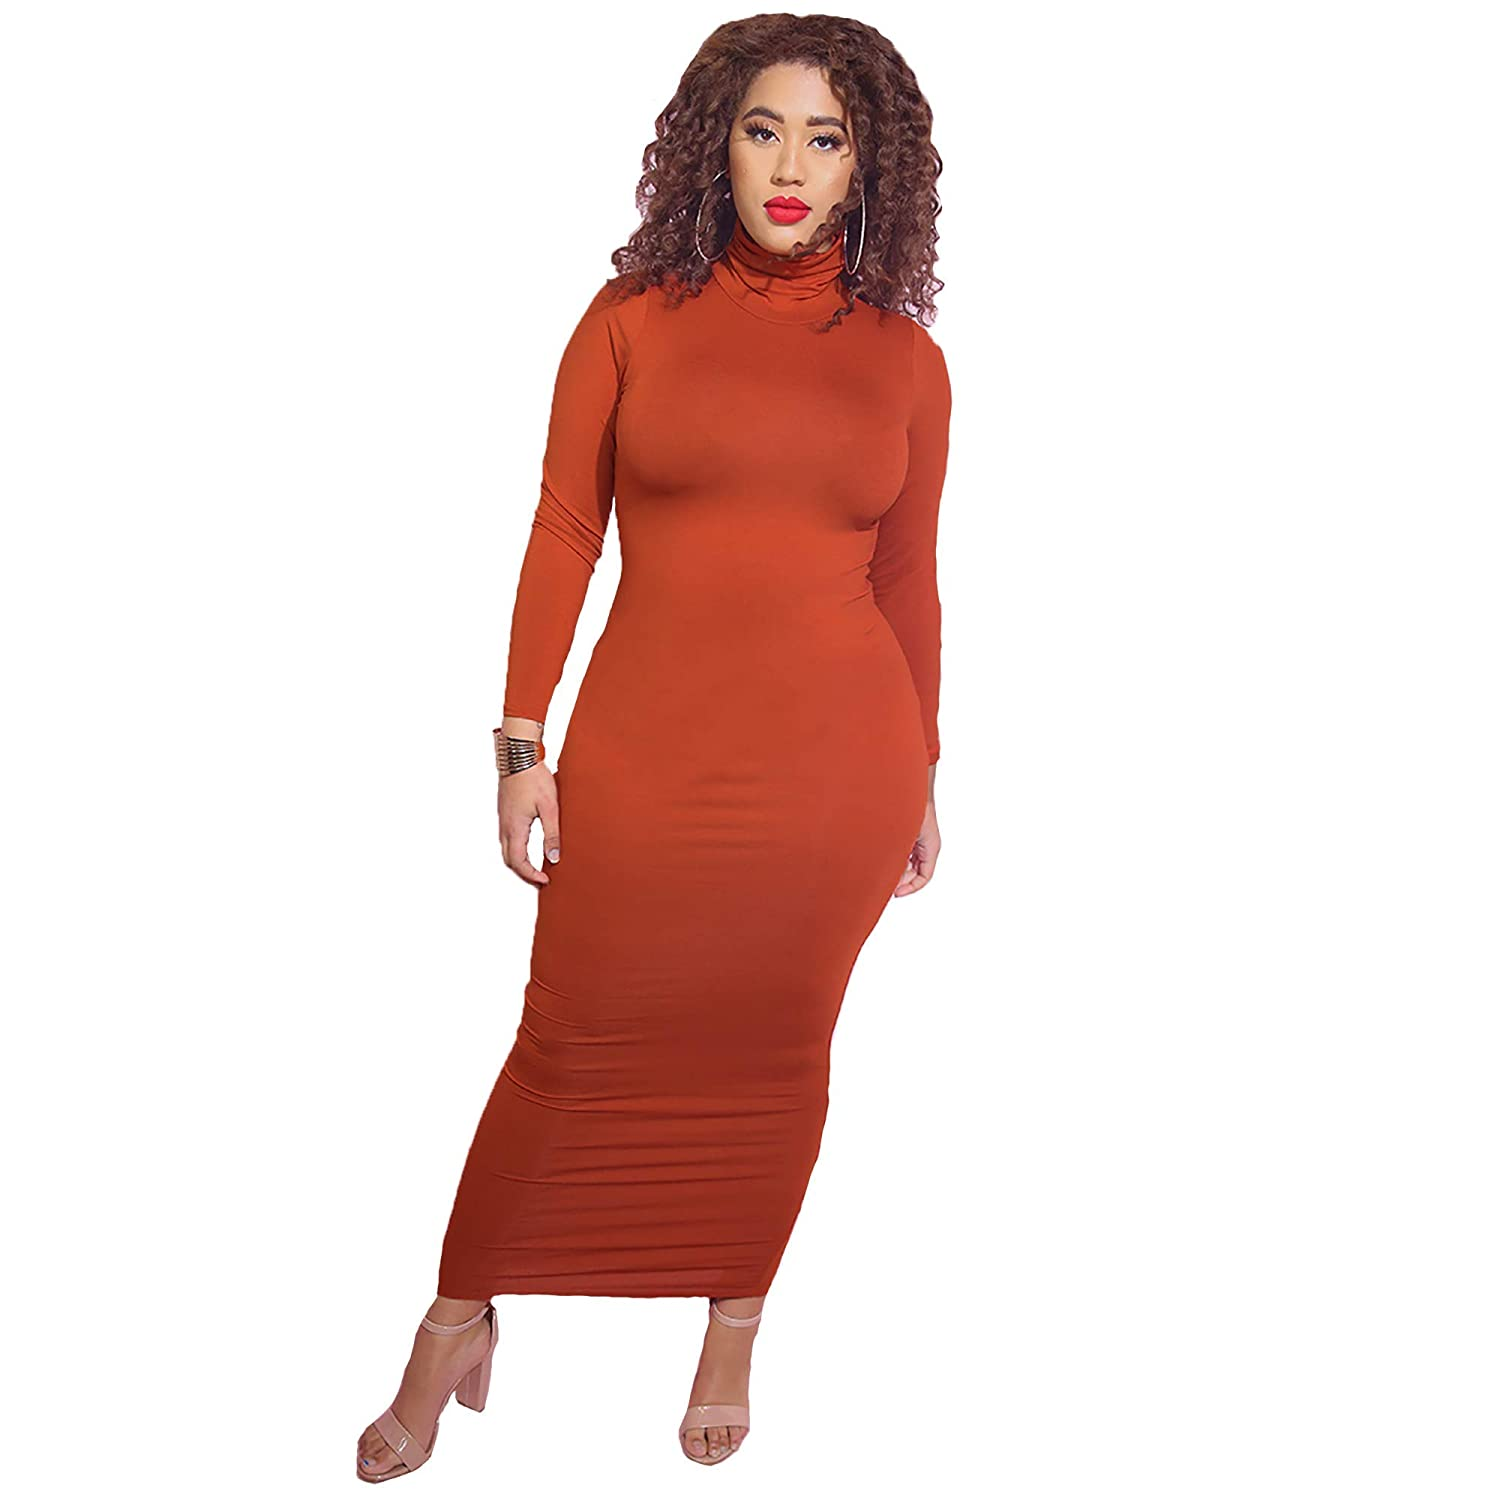 54d0a9112c9 Rebdolls Women s Casual Turtleneck Long Sleeve Bodycon Maxi Dress - Plus  Sizes